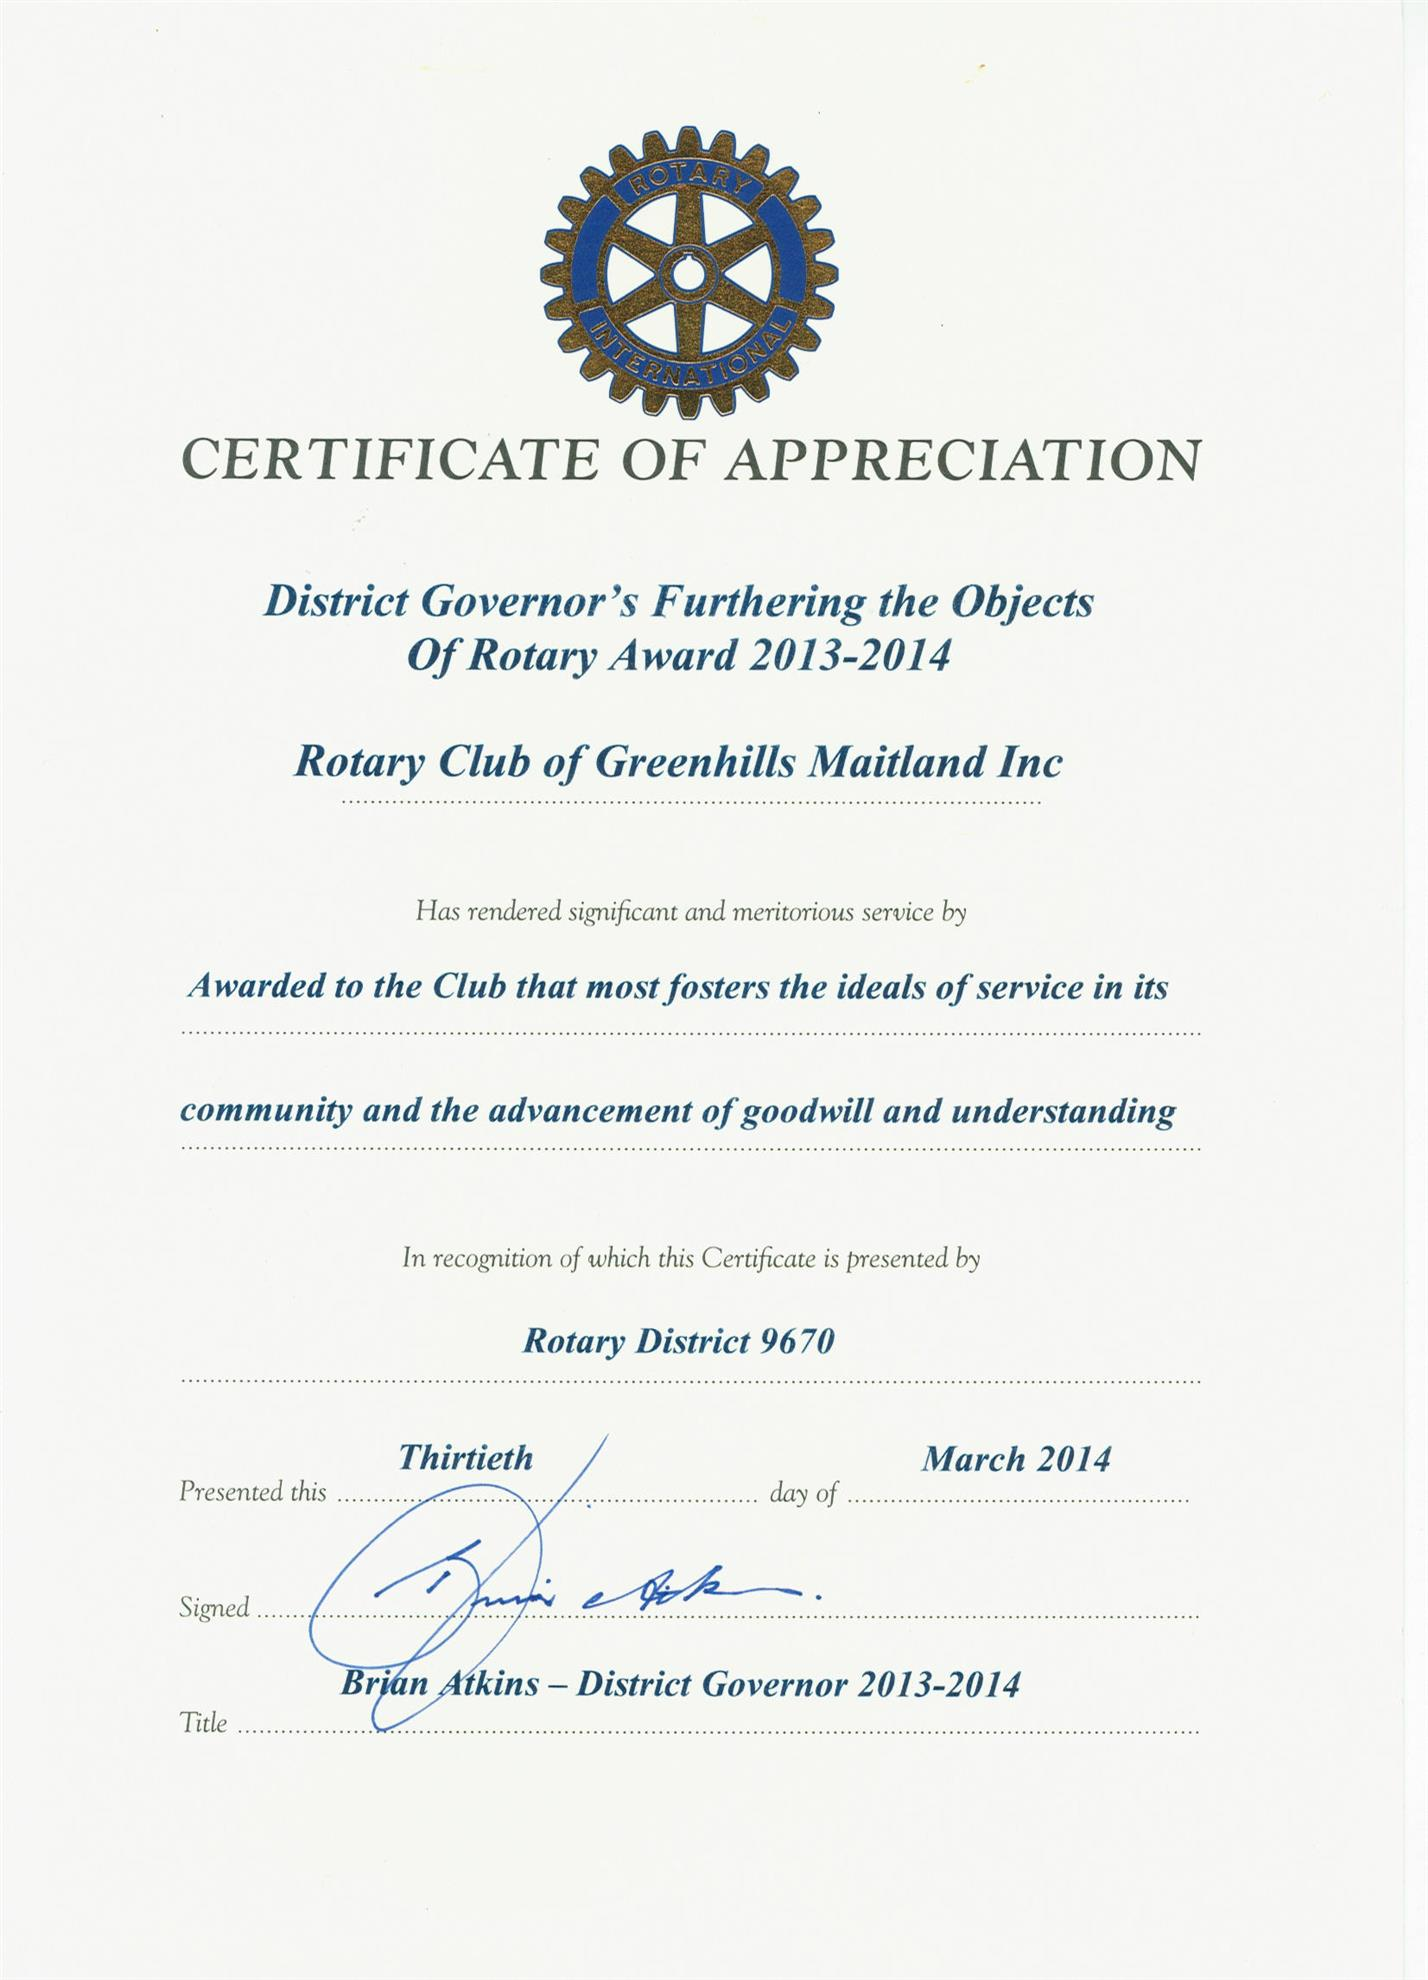 rotary certificate of appreciation template - certificate of appreciation gallery editable certificate